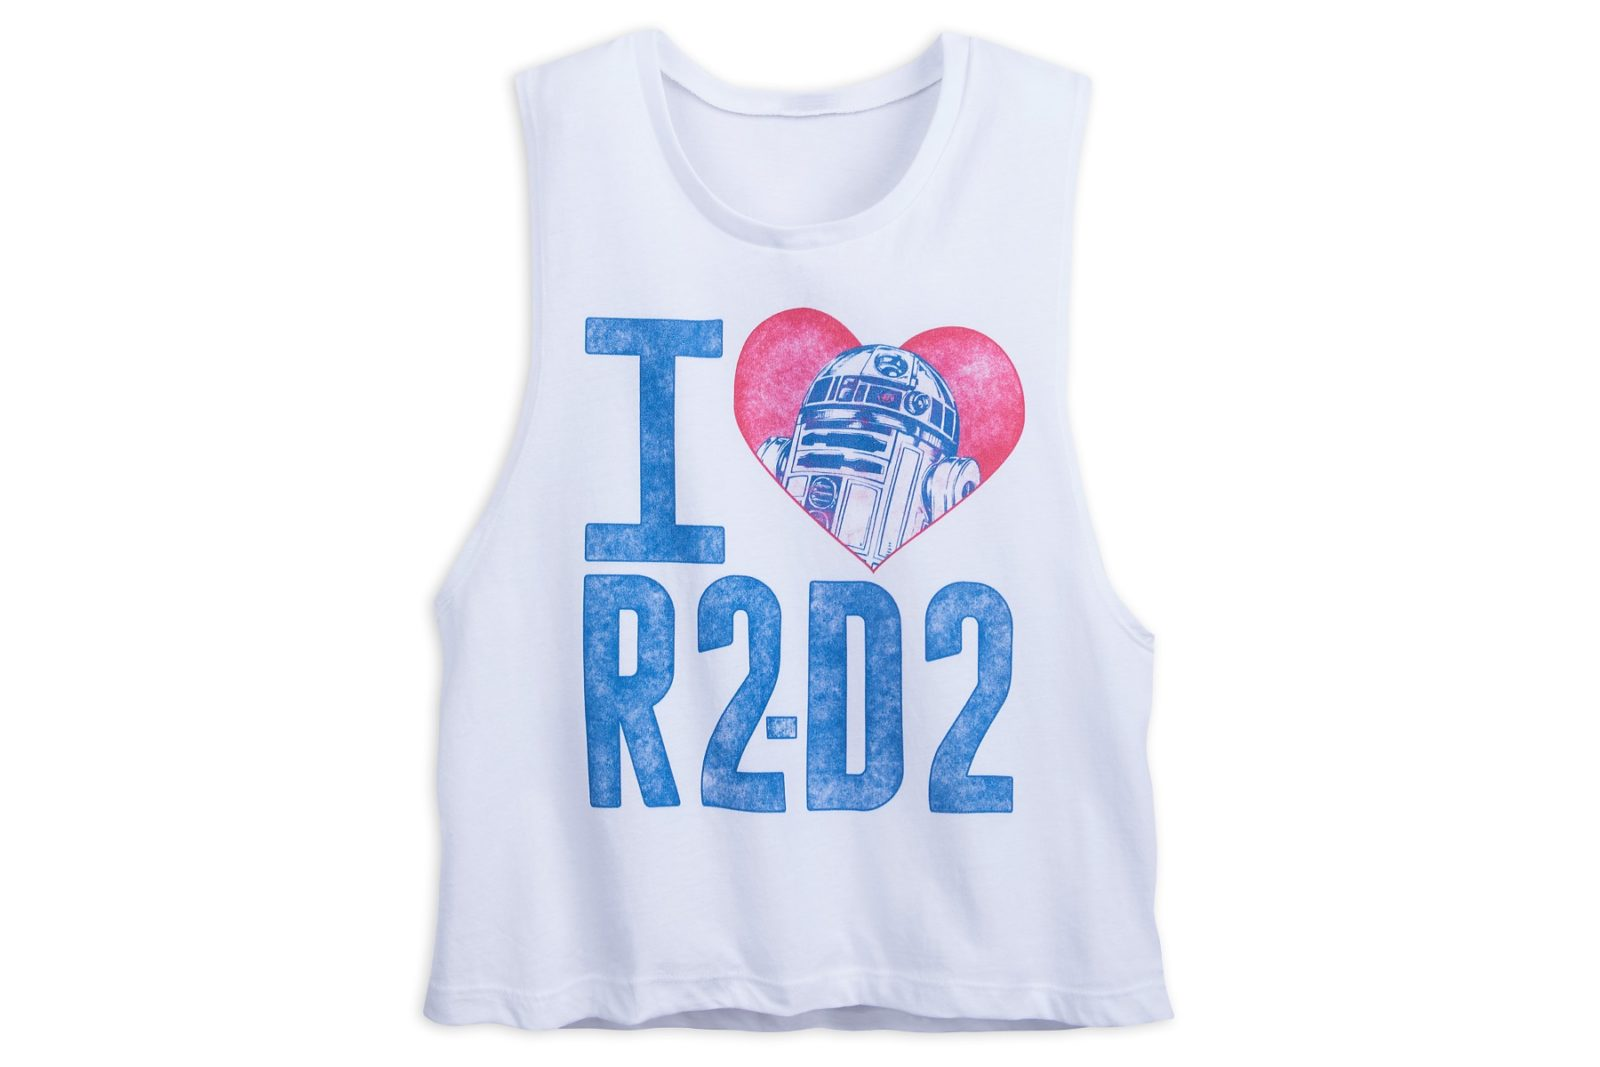 I ♥ R2-D2 Crop Tank Top at Shop Disney